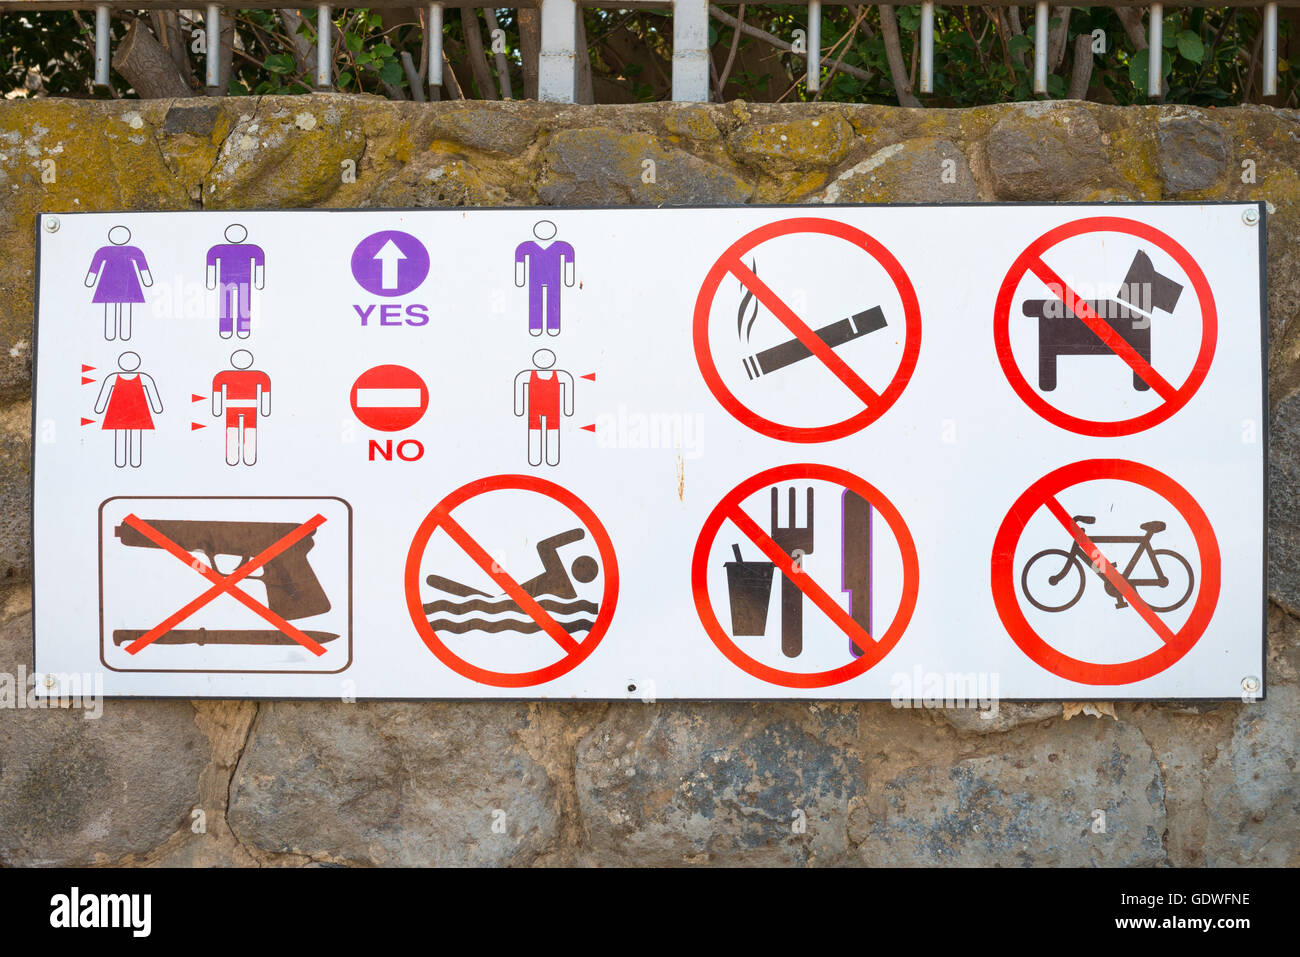 Israel Capernaum Kfar Nahum Village Sea of Galilee home Peter the Fisherman sign at entrance dress code, no swimming - Stock Image